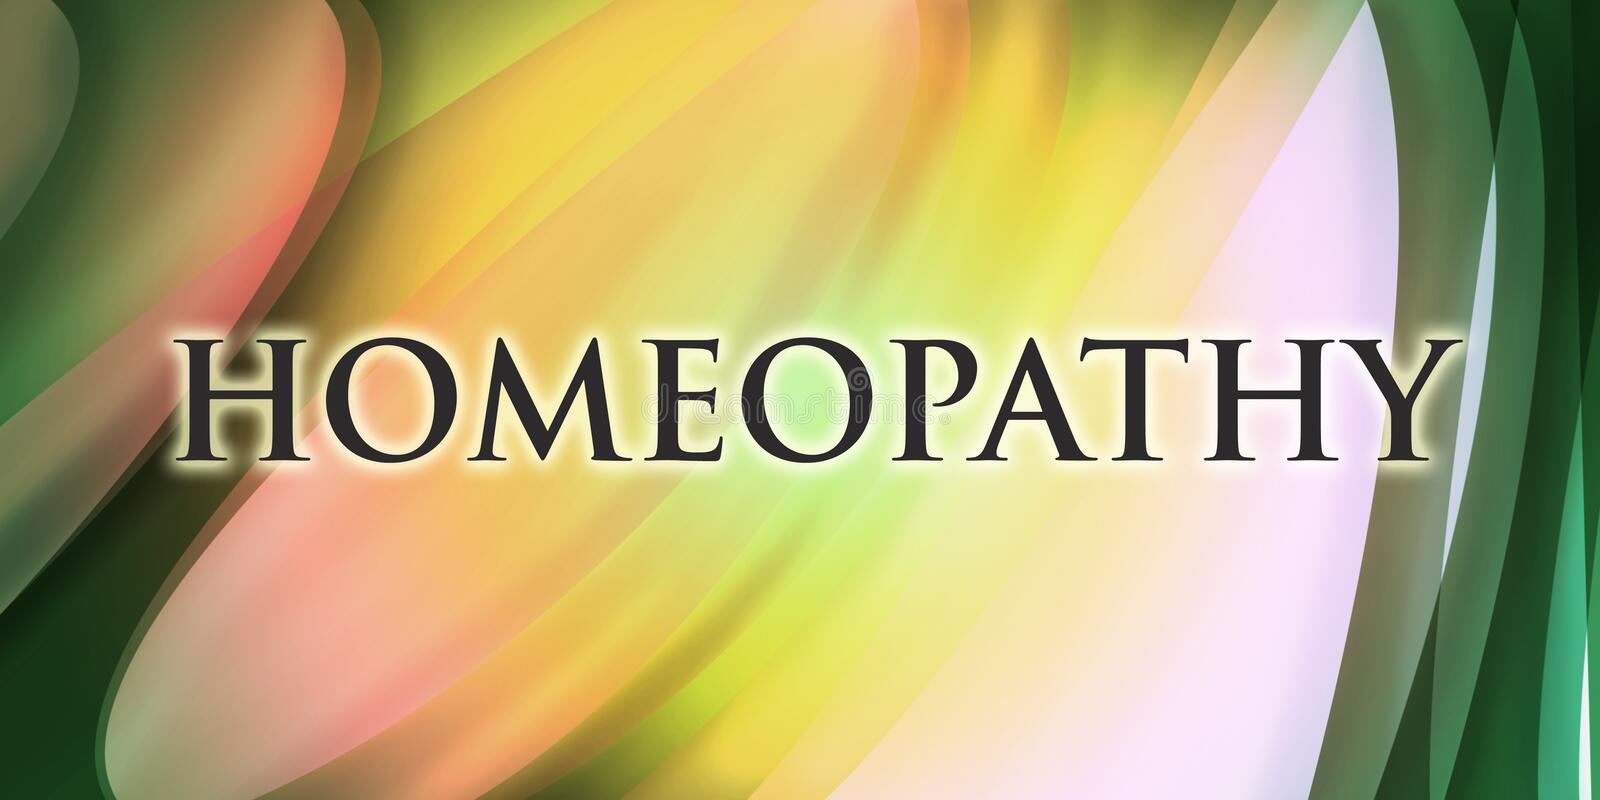 Homeopathy design royalty free stock images